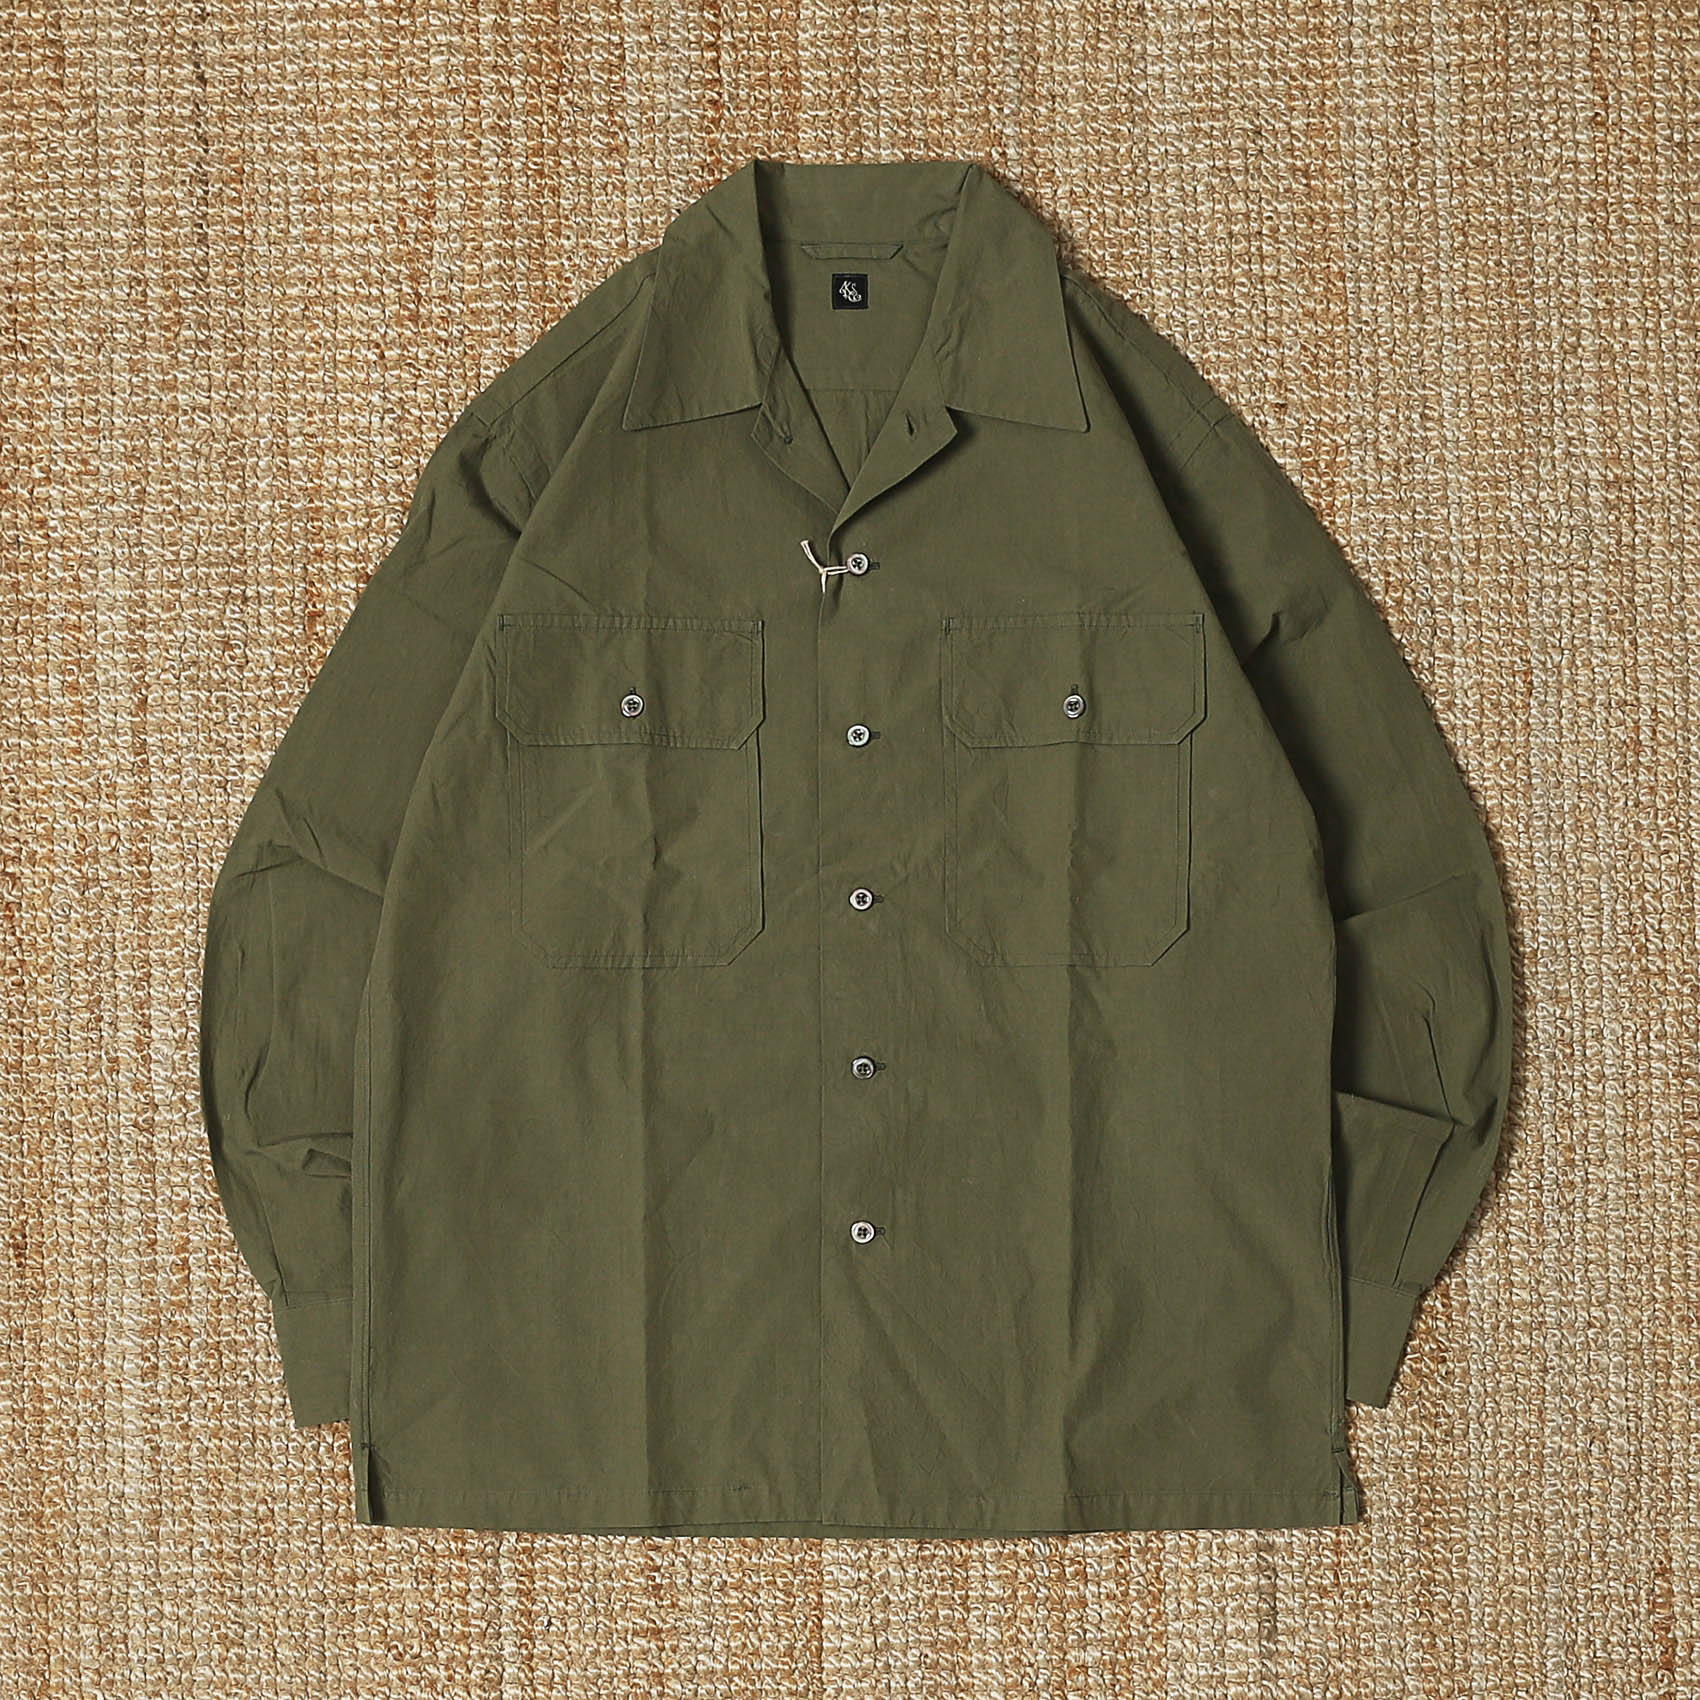 KAPTAIN SUNSHINE MIL.SHIRT JACKET - OLIVE